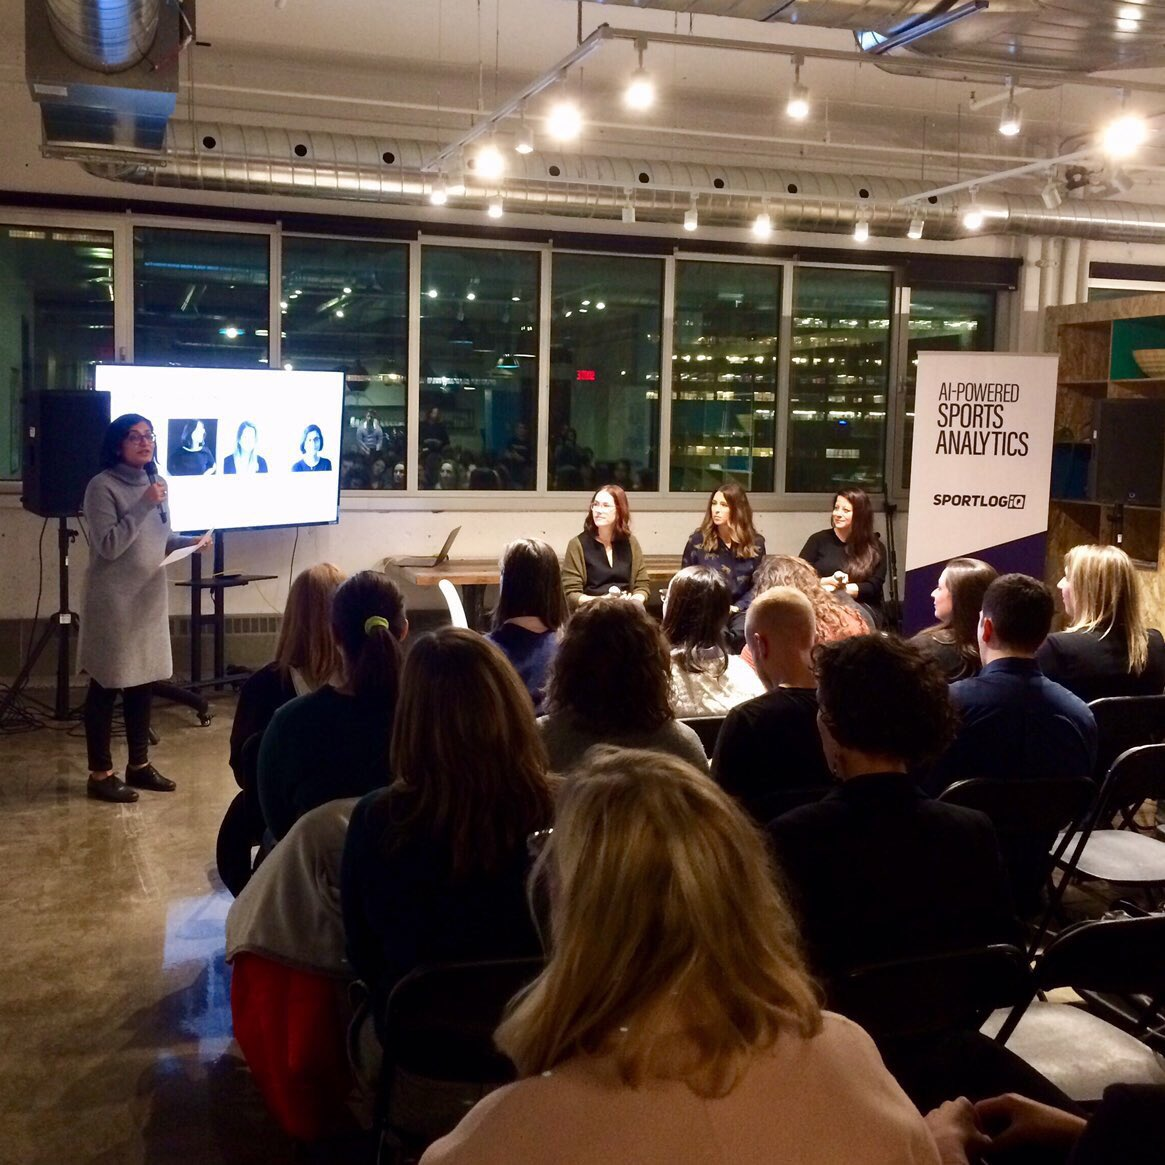 Women of Product Montreal's inaugural event underway @SPORTLOGiQ with panelists @EmilieFournelle @zoltok